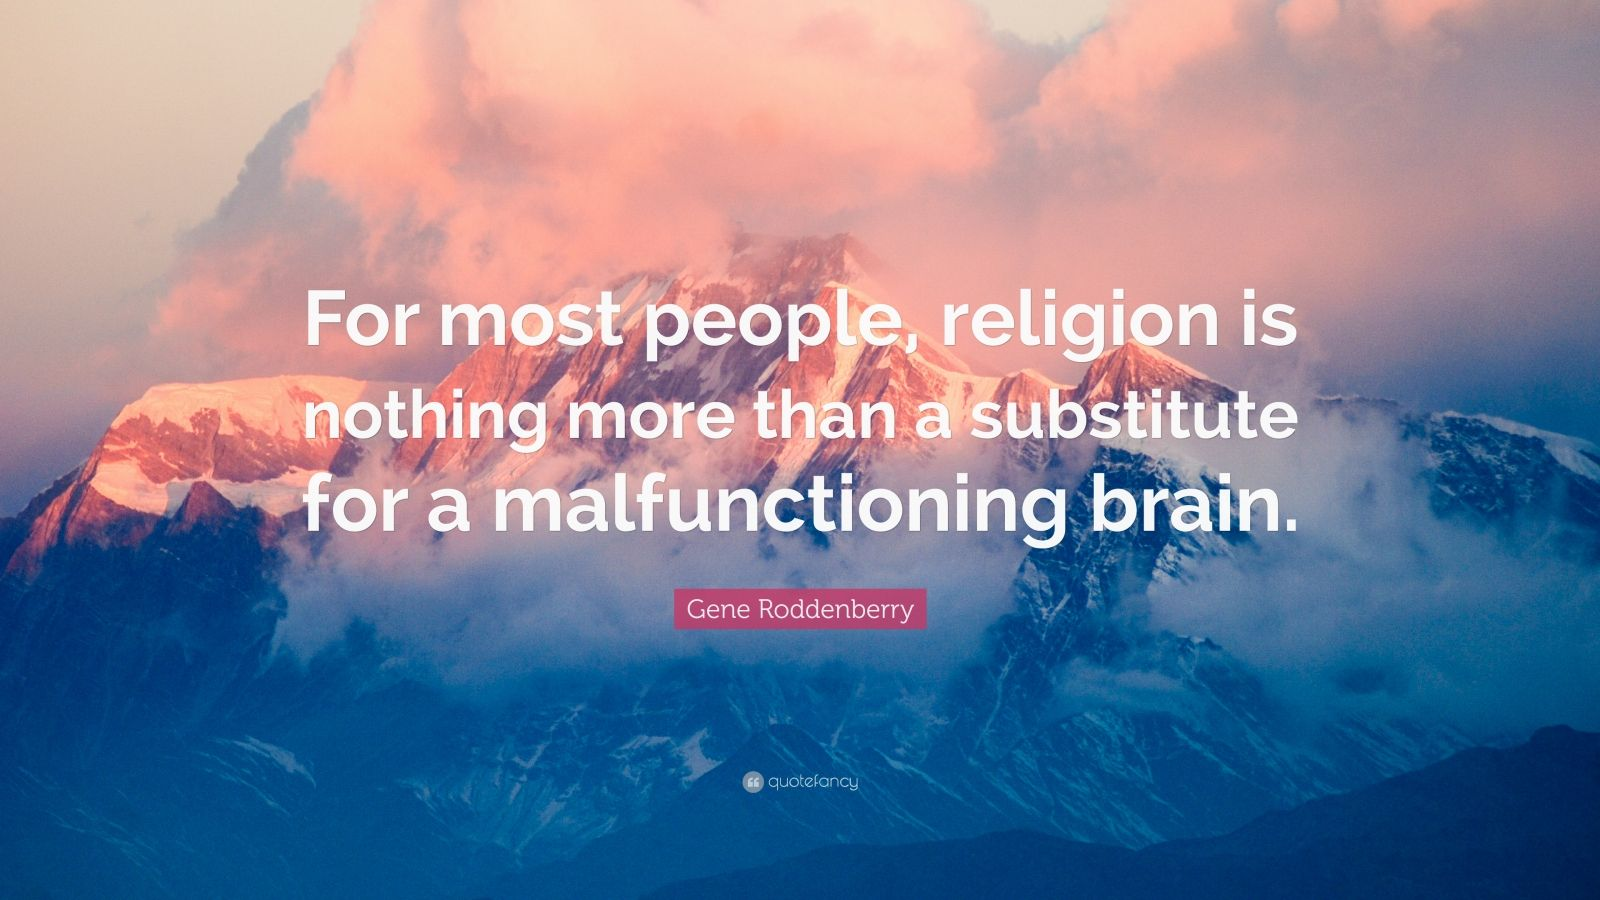 """Gene Roddenberry Quote: """"For most people, religion is nothing more than a substitute for a malfunctioning brain."""""""